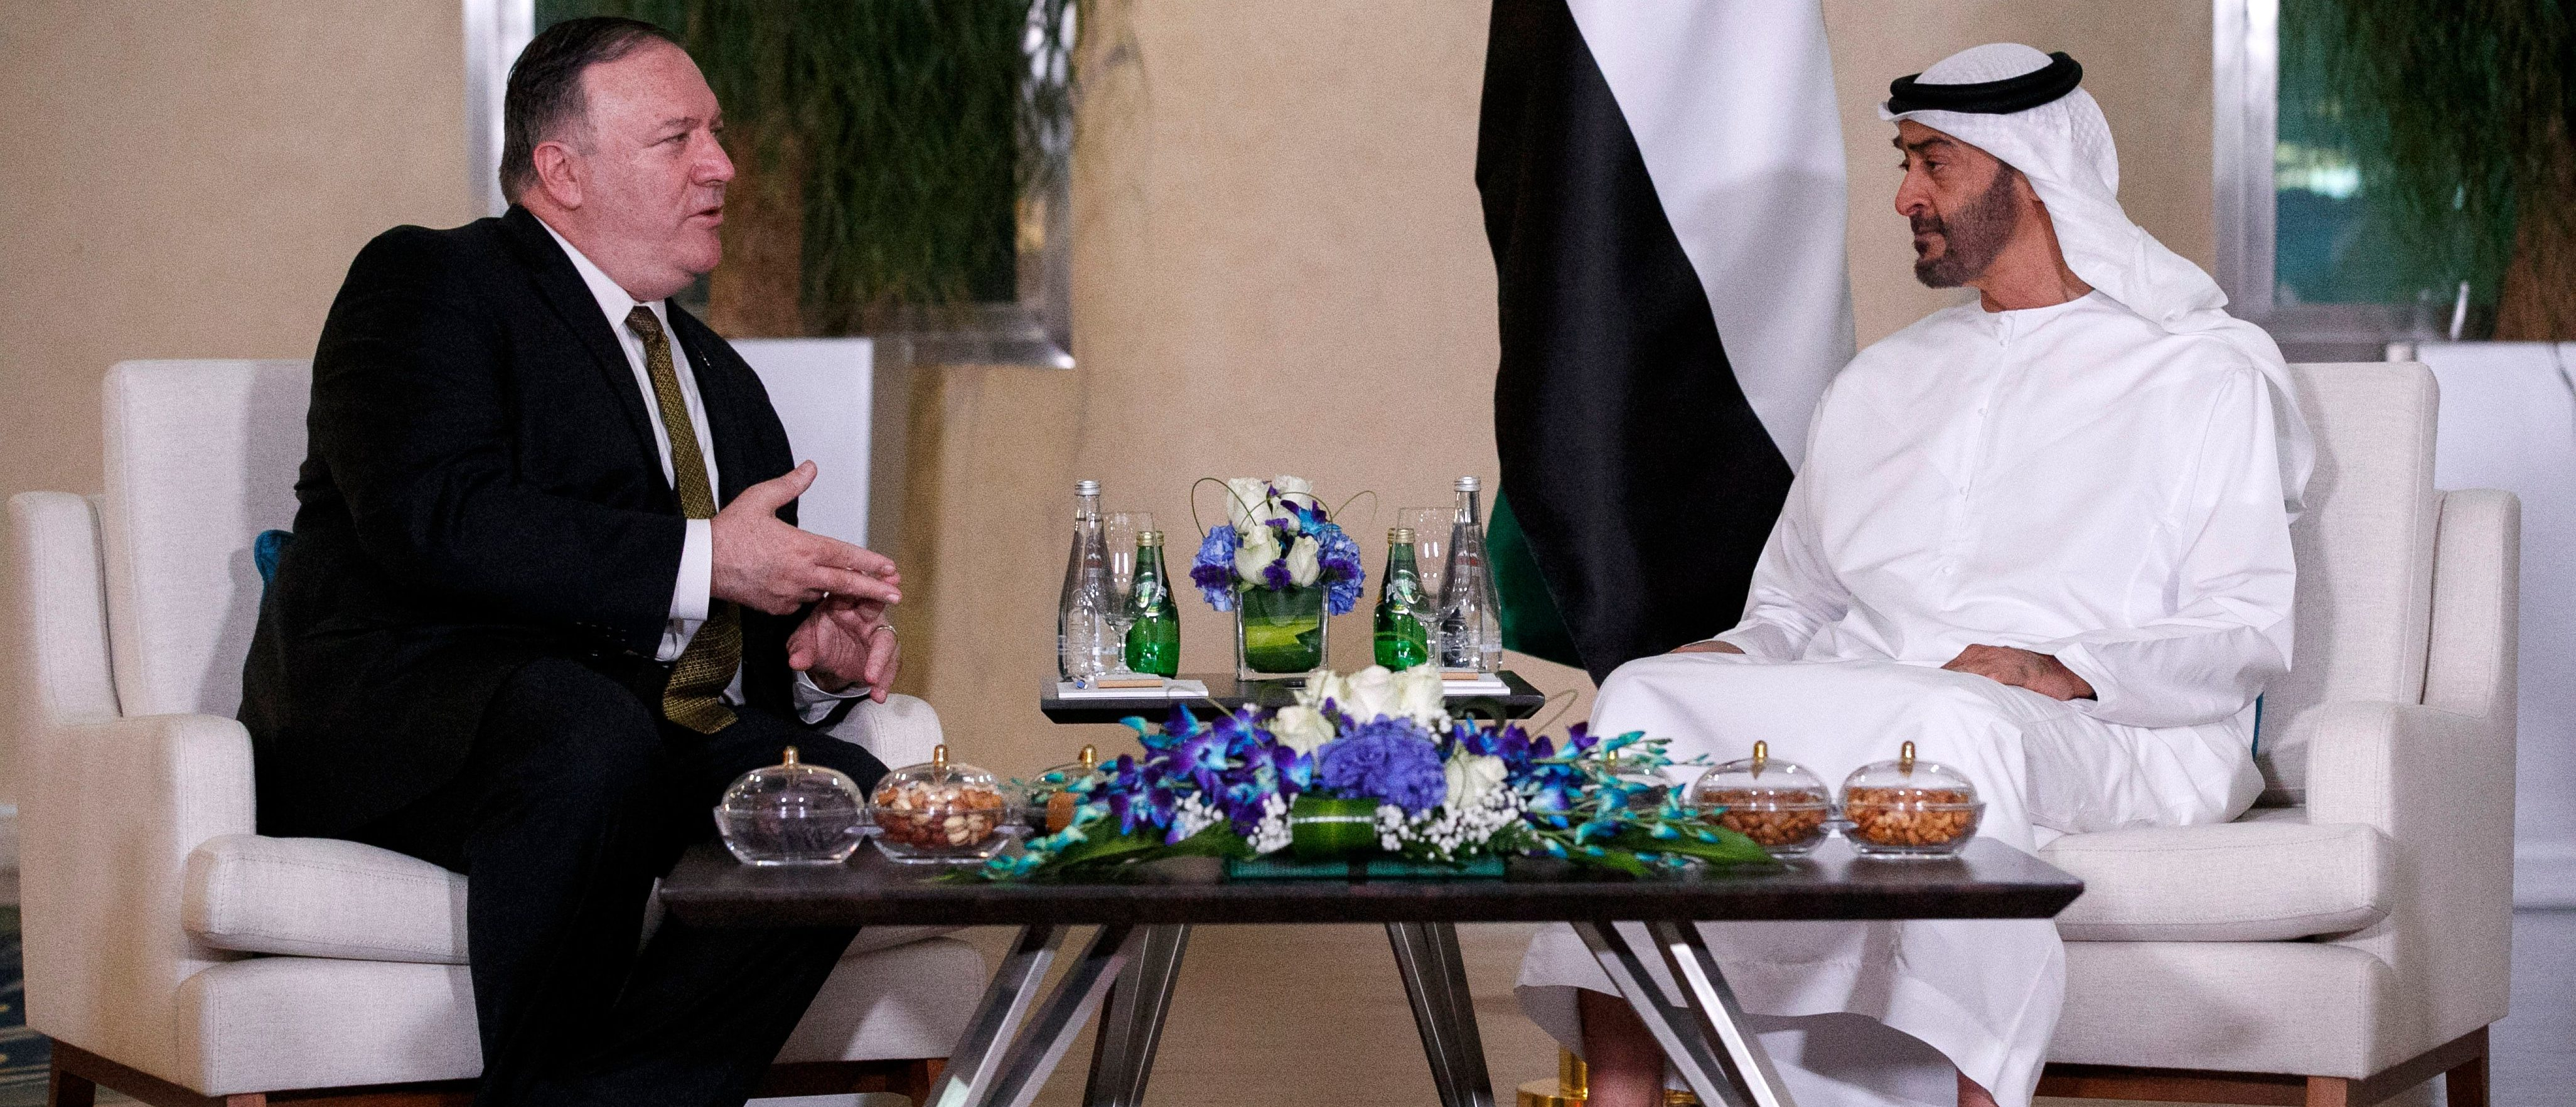 U.S. Secretary of State Mike Pompeo (L) meets with Mohamed ben Zayed Al-Nahyan, Crown Prince of Abu Dhabi and Deputy Supreme Commander of the UAE Armed Forces, in Abu Dhabi on June 24, 2019. (JACQUELYN MARTIN/AFP/Getty Images)